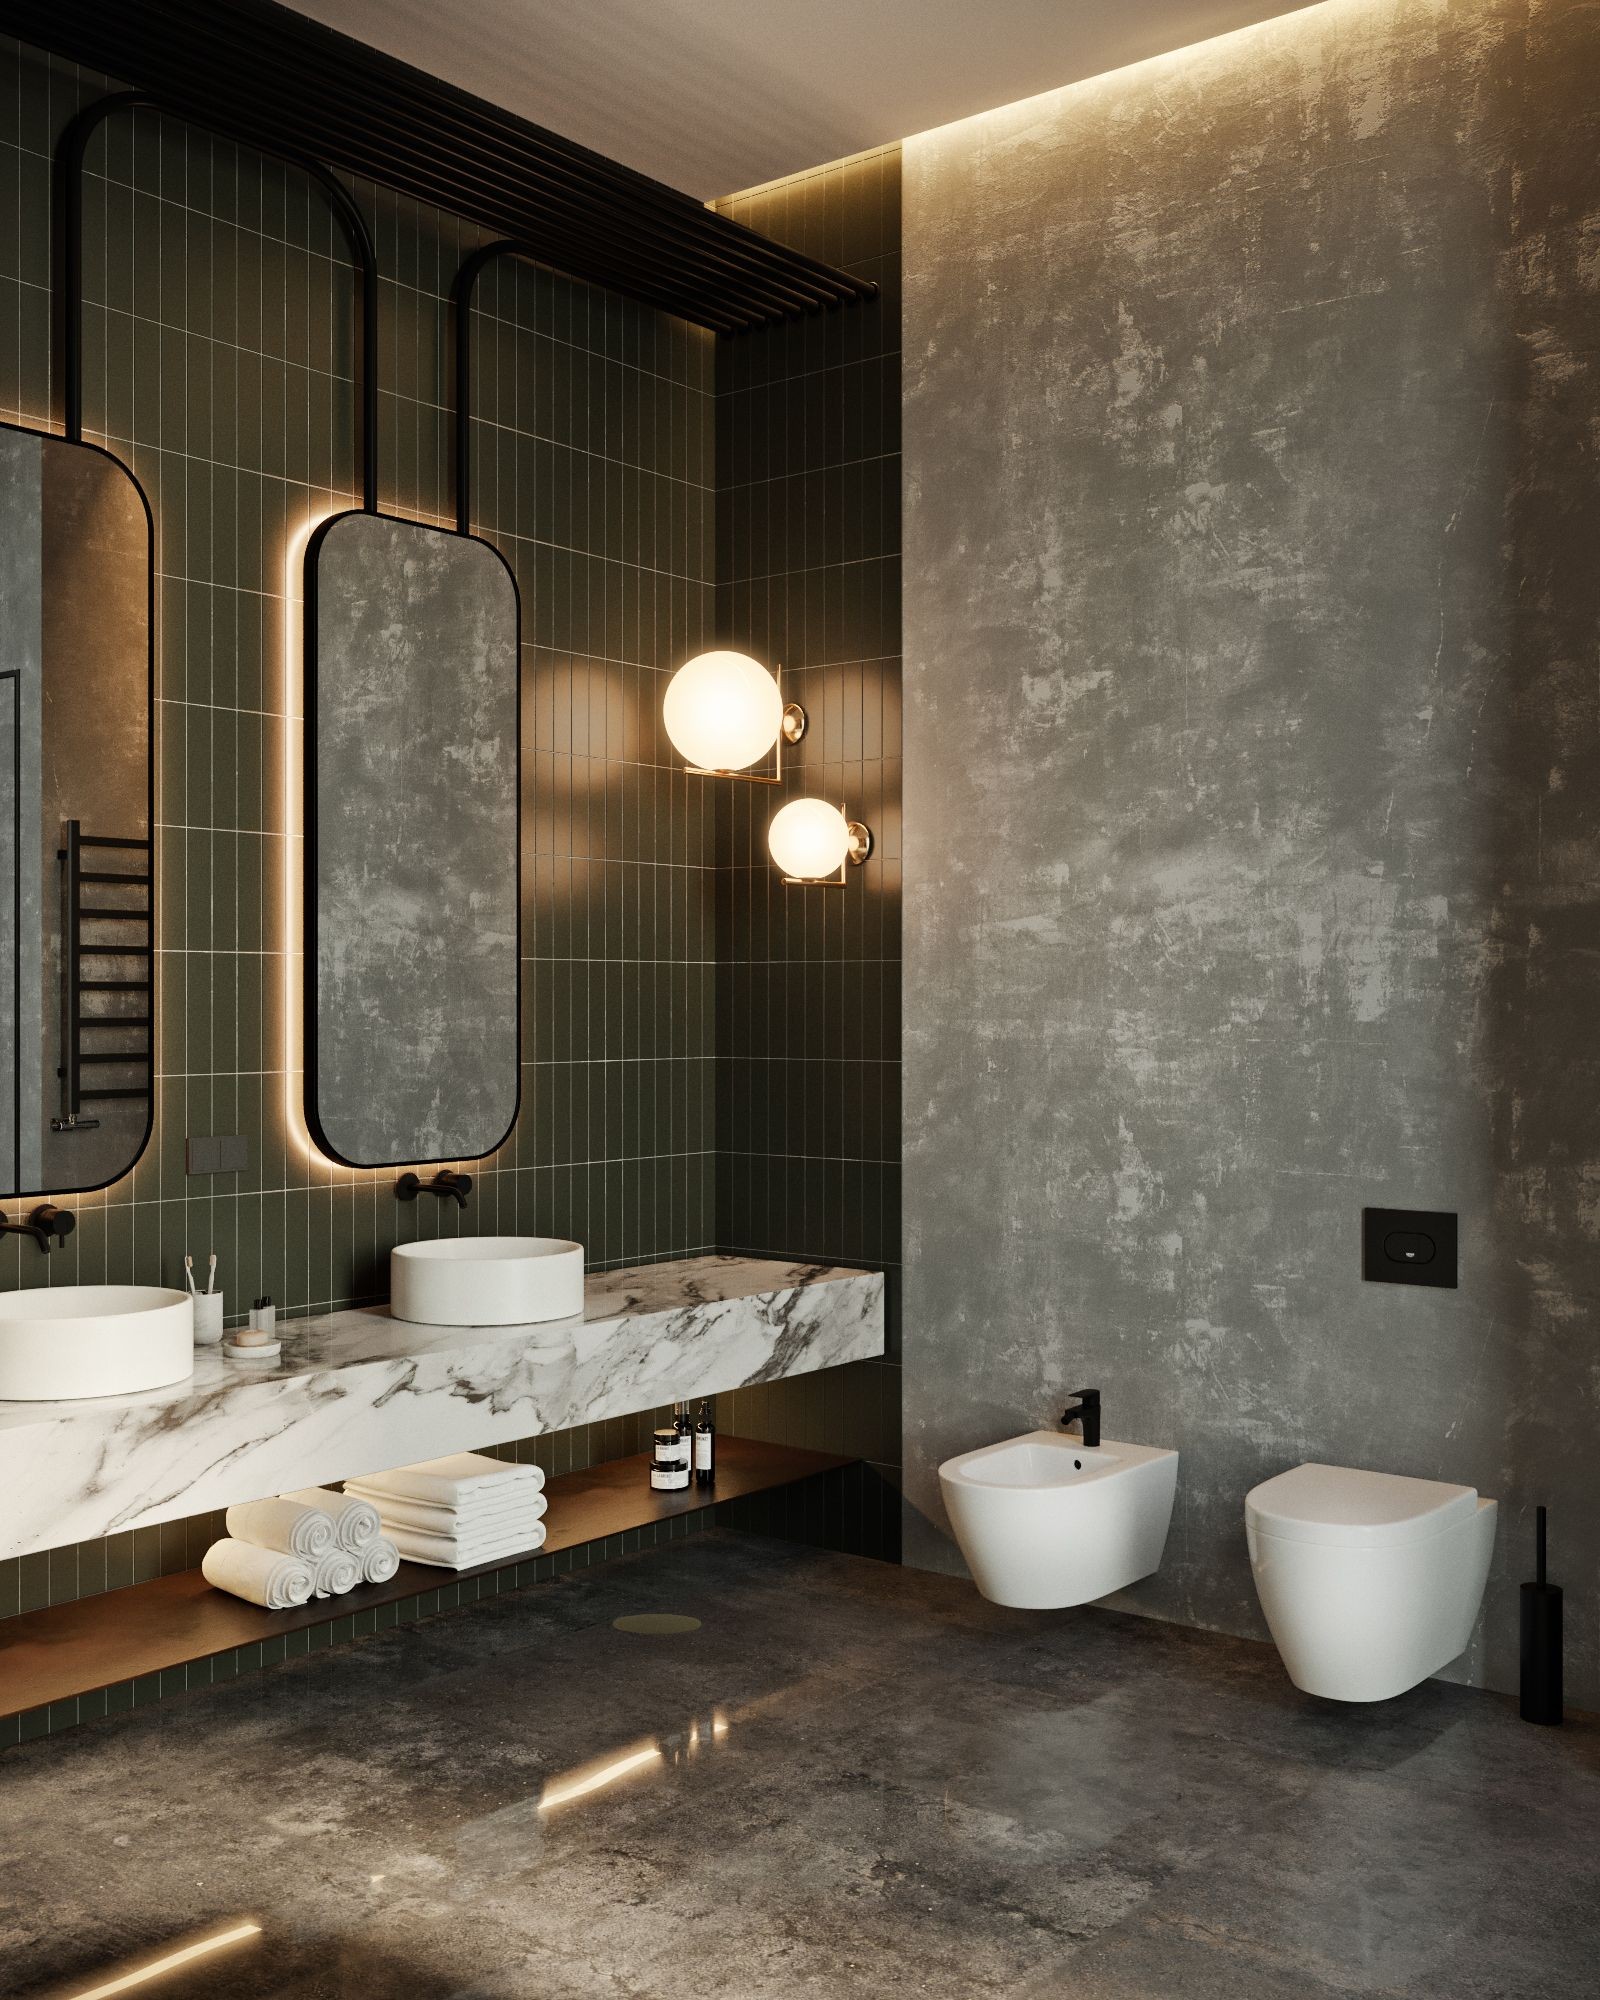 Cocoon Contemporary Bathroom Design Inspiration High End Stainless Steel Desig Industrial Bathroom Design Marble Bathroom Designs Bathroom Design Inspiration